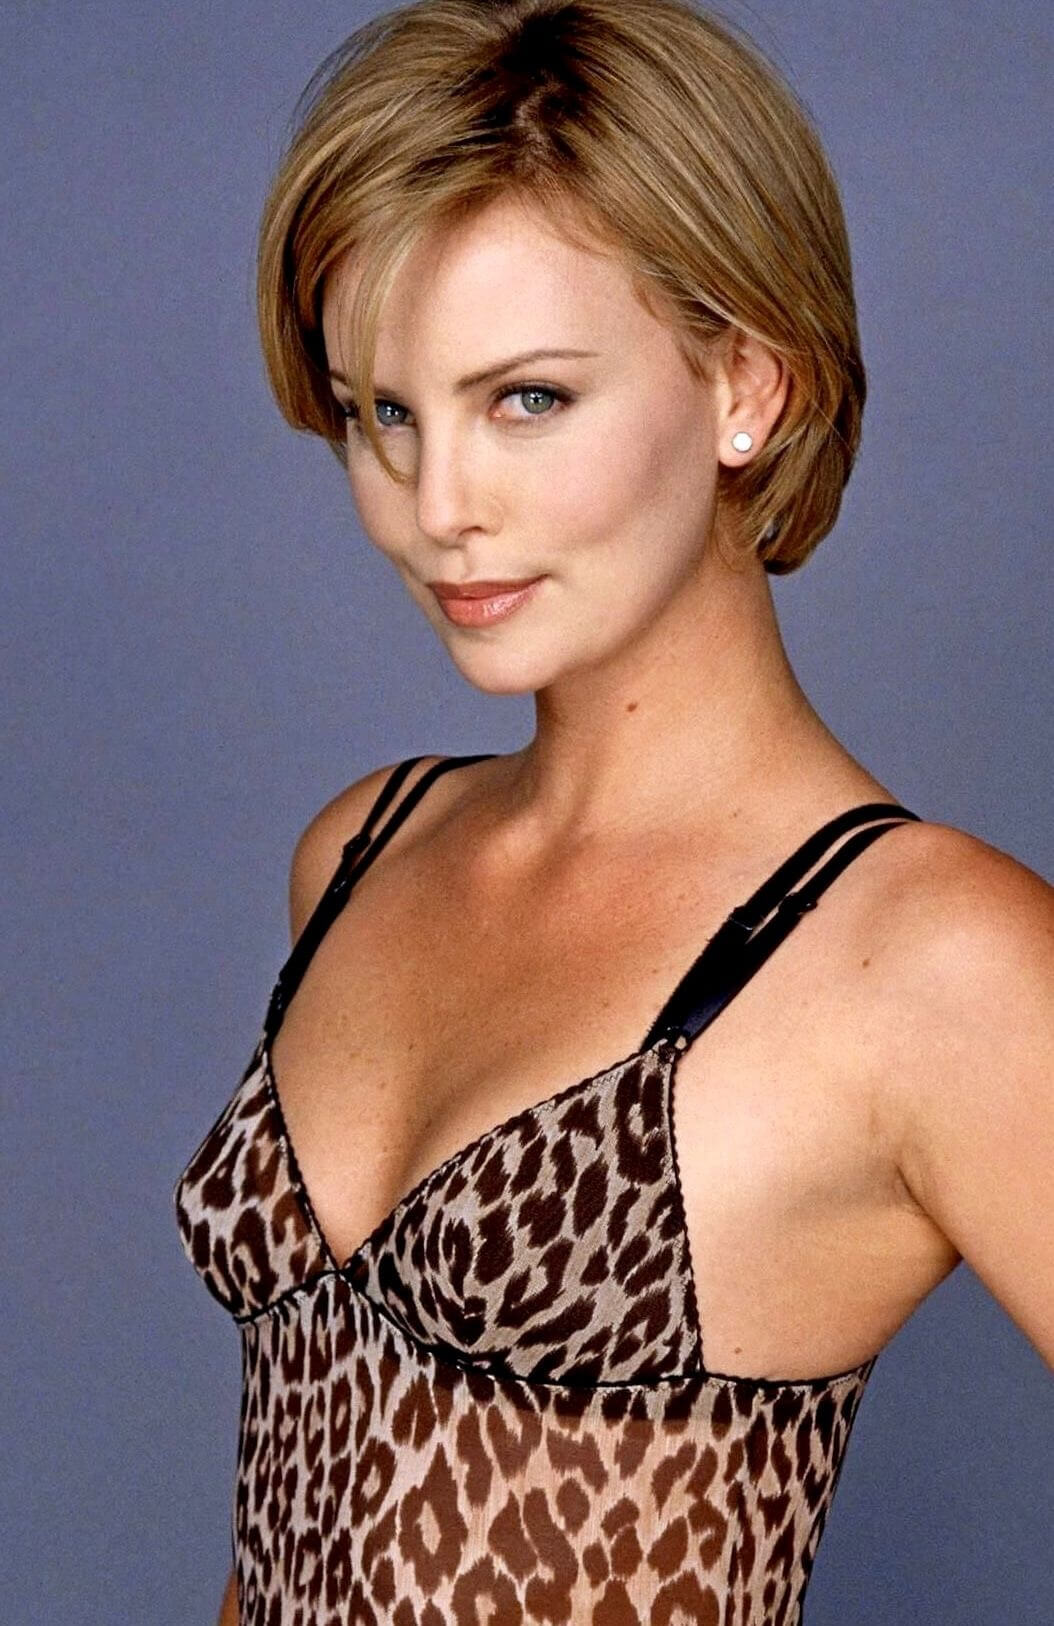 Charlize Theron hot cleavage pics (2)